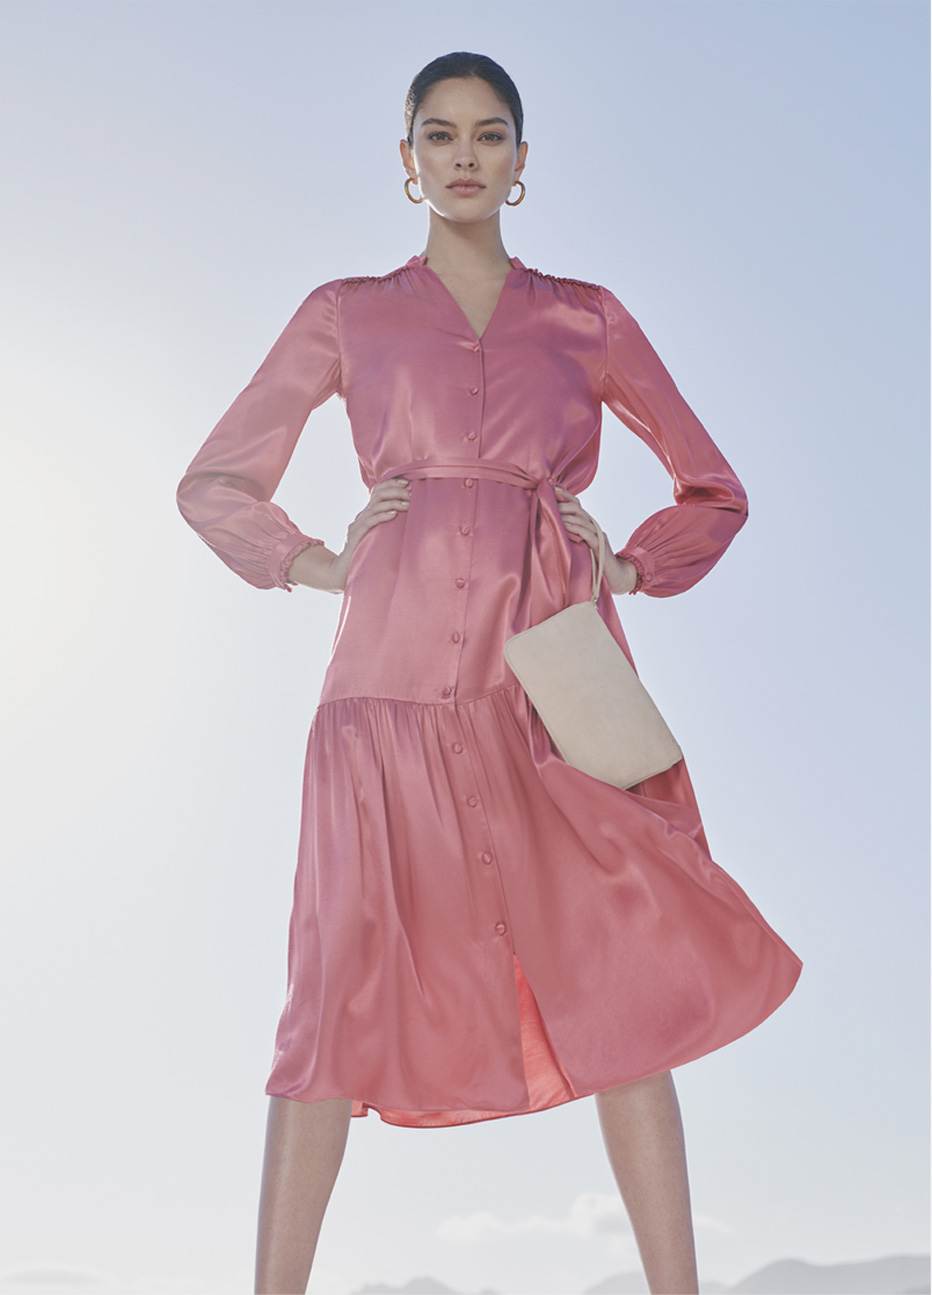 Pink satin dress with waist-tie detail for weddings and occasions, paired with matching court shoes and a wristlet clutch both in pale pink and hoop earrings, by Hobbs.